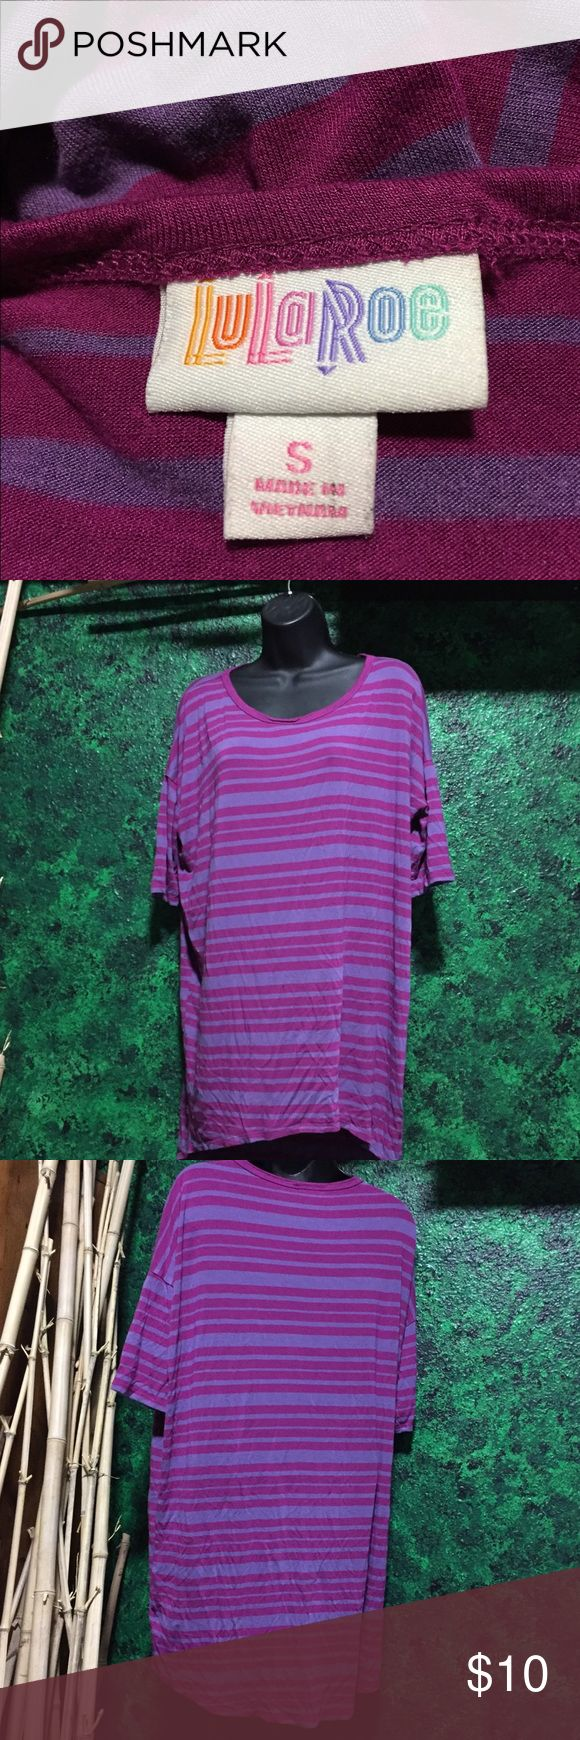 LuLa Roe Irma small purple striped shirt Cute LulaRoe flowy feel with fun color stripes! Great condition, only worn a couple times. Purple and magenta alternating stripes of various sizes. LuLaRoe Tops Tunics